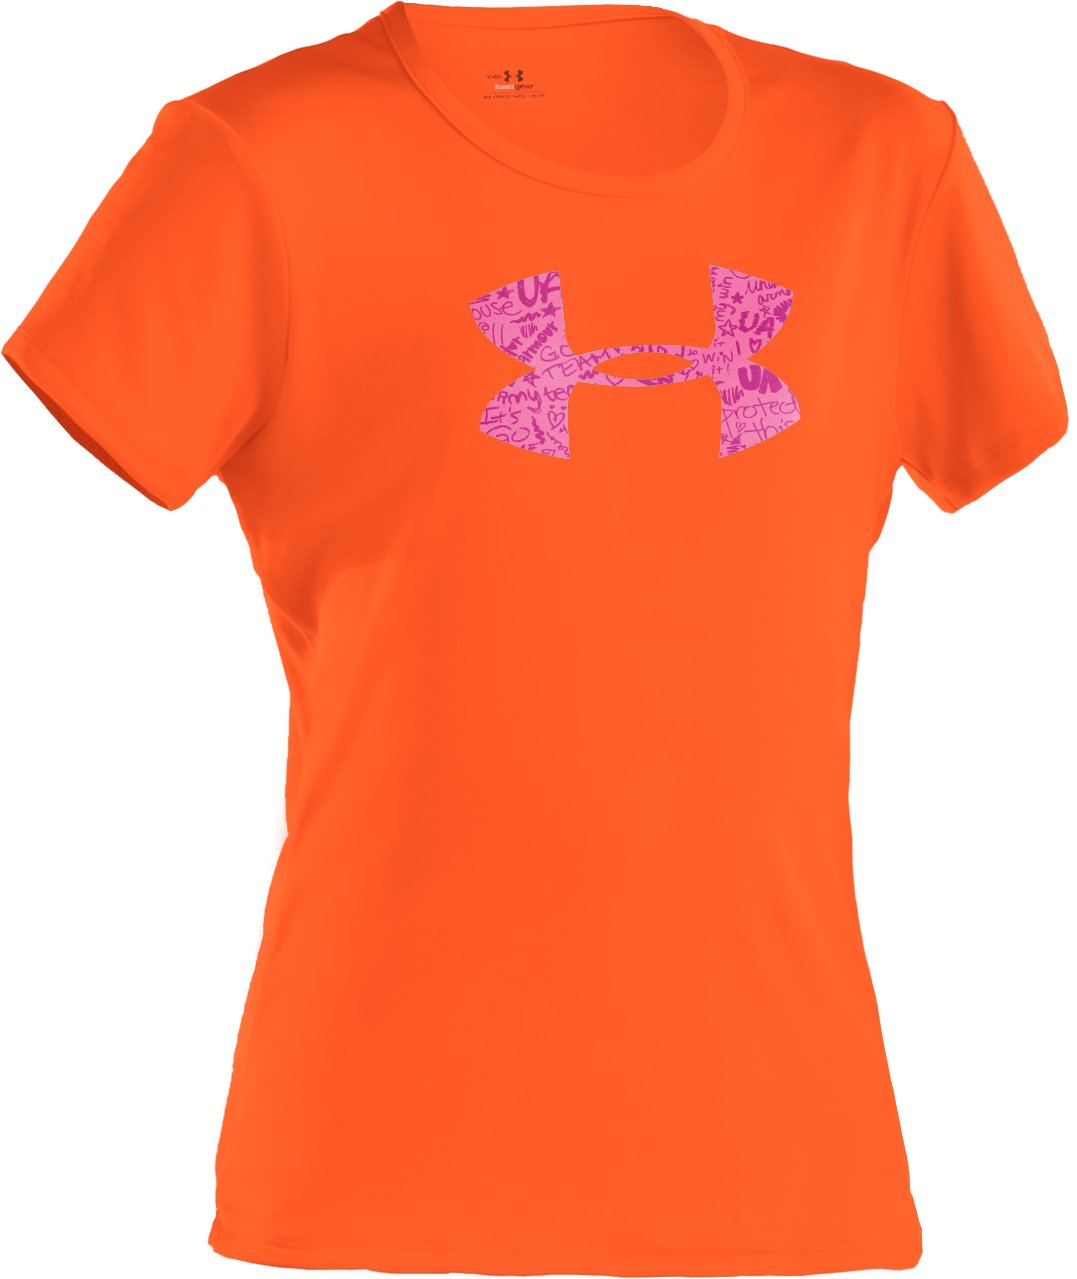 Girls' UA Big Logo Short Sleeve T-Shirt, PINKADELIC